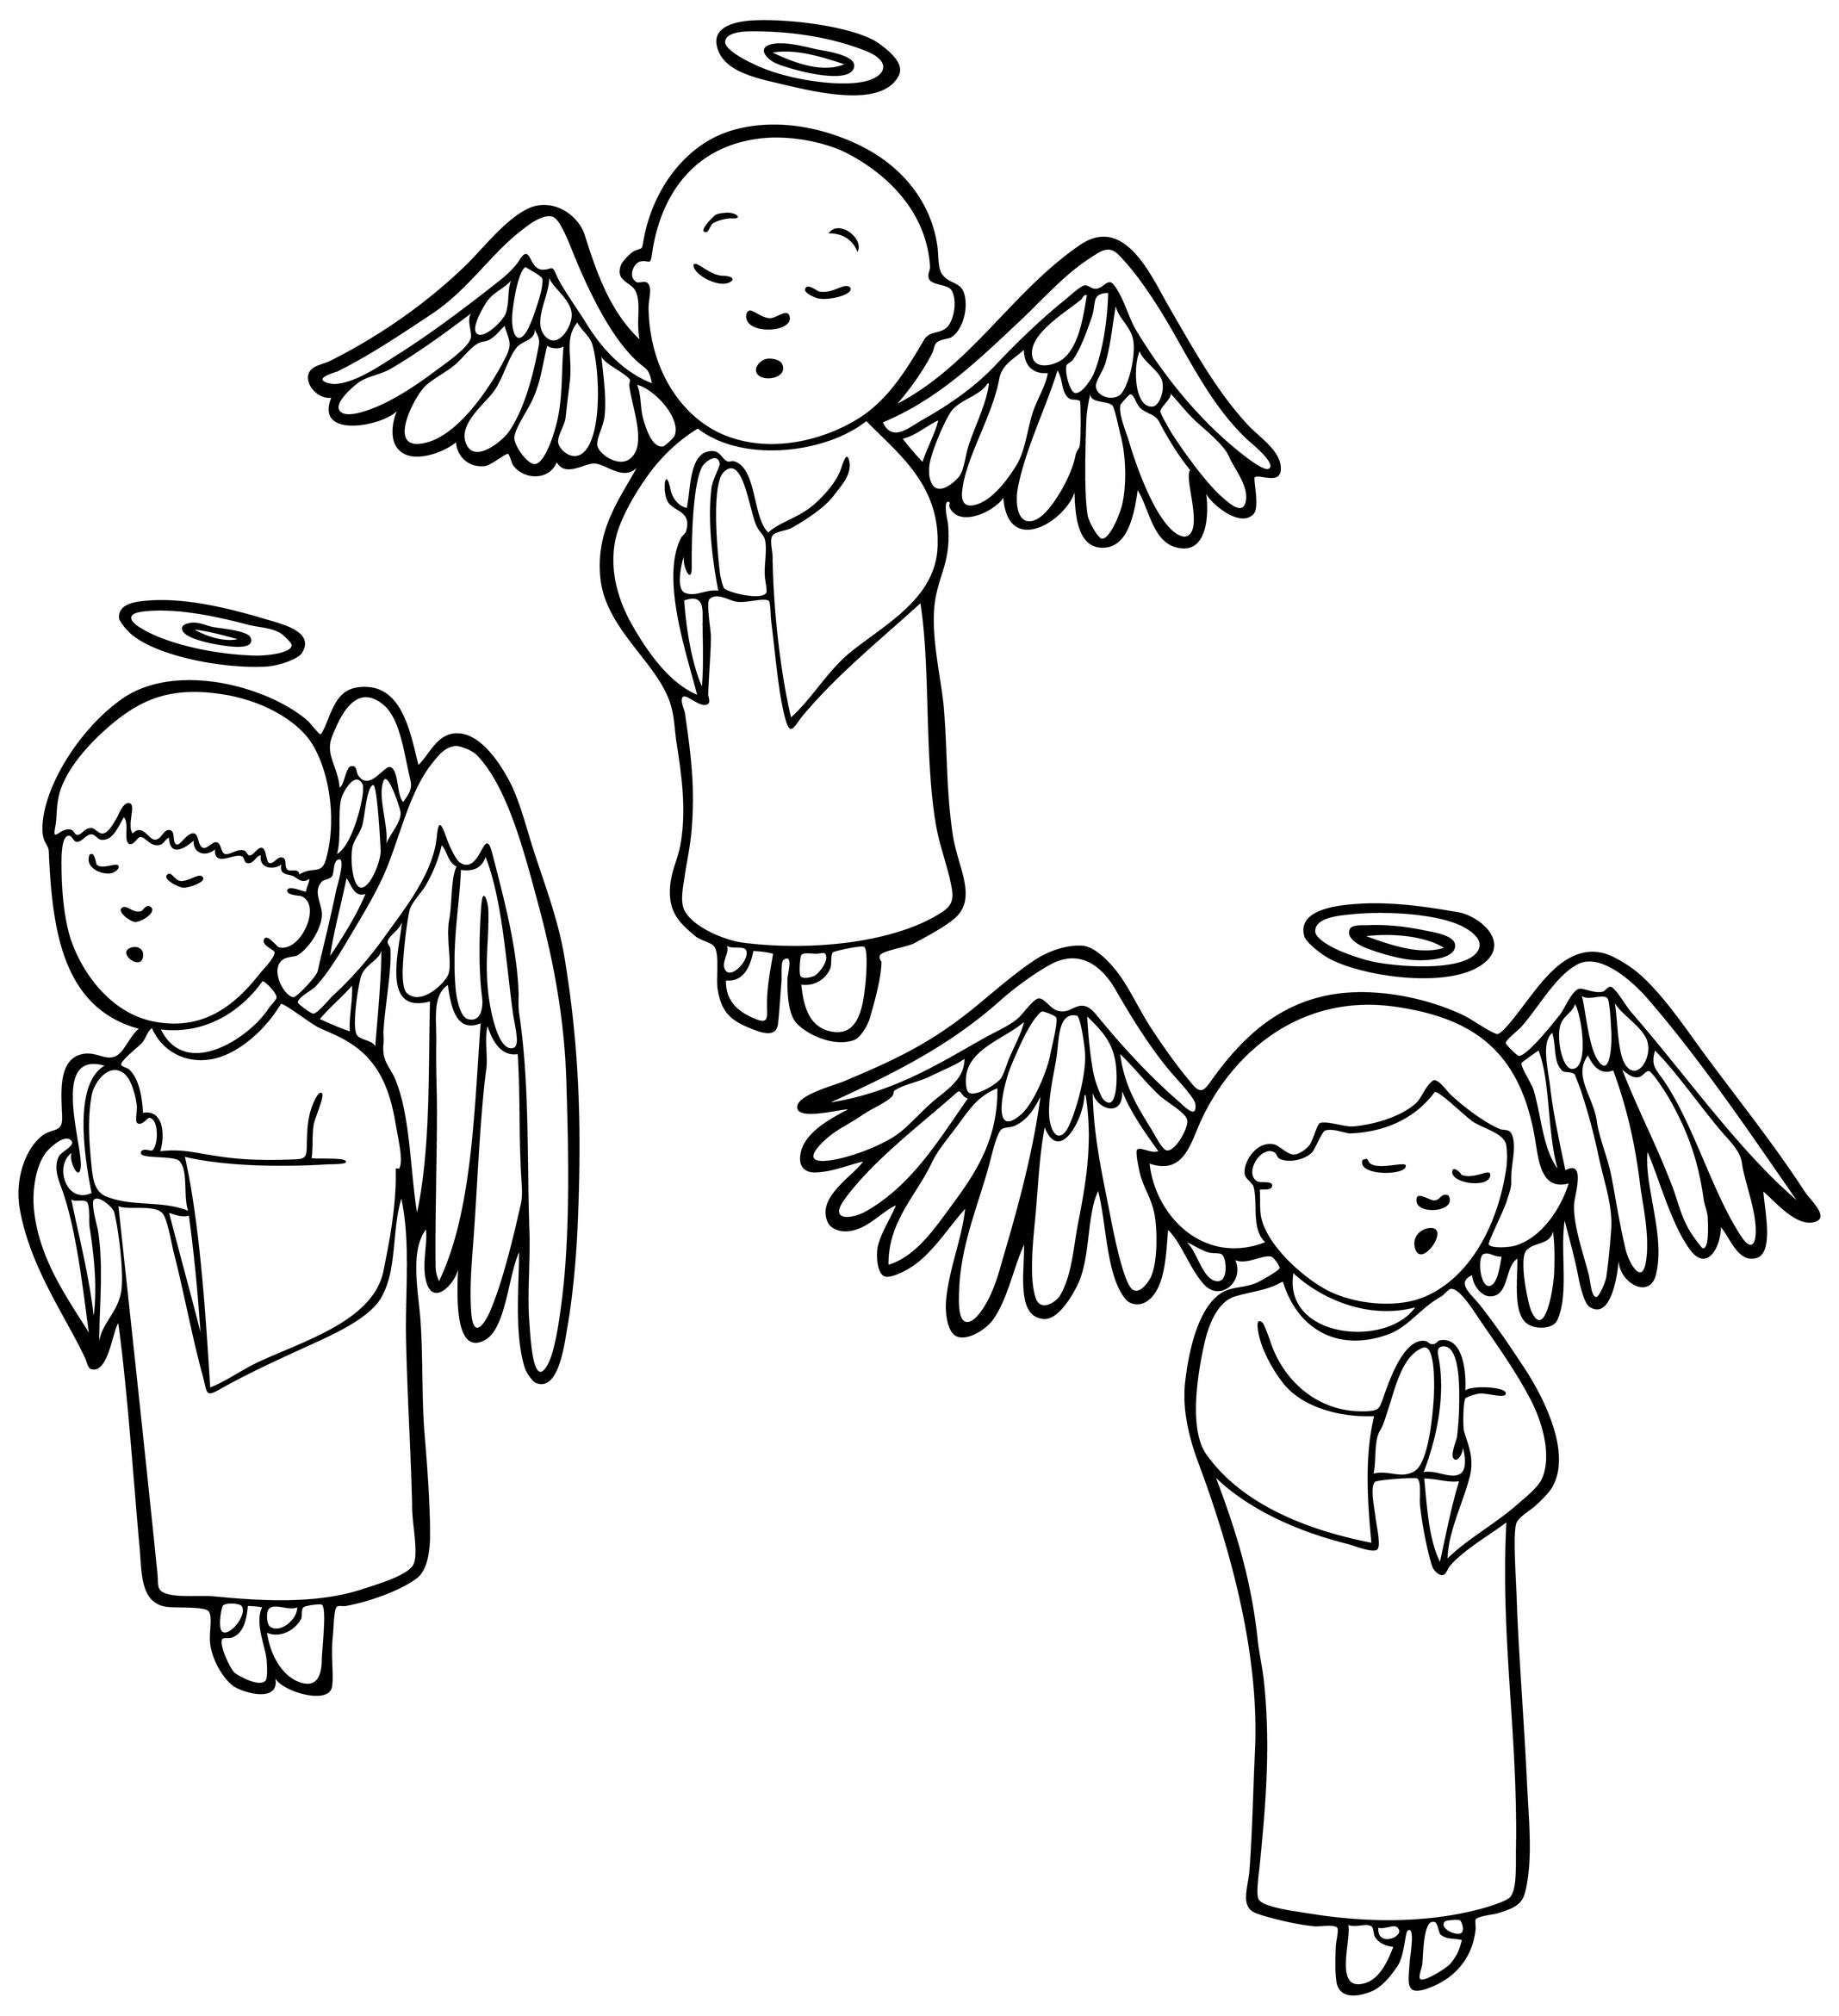 Angel Coloring Sheet – Kids Angels Coloring Sheet and Christian Song ...